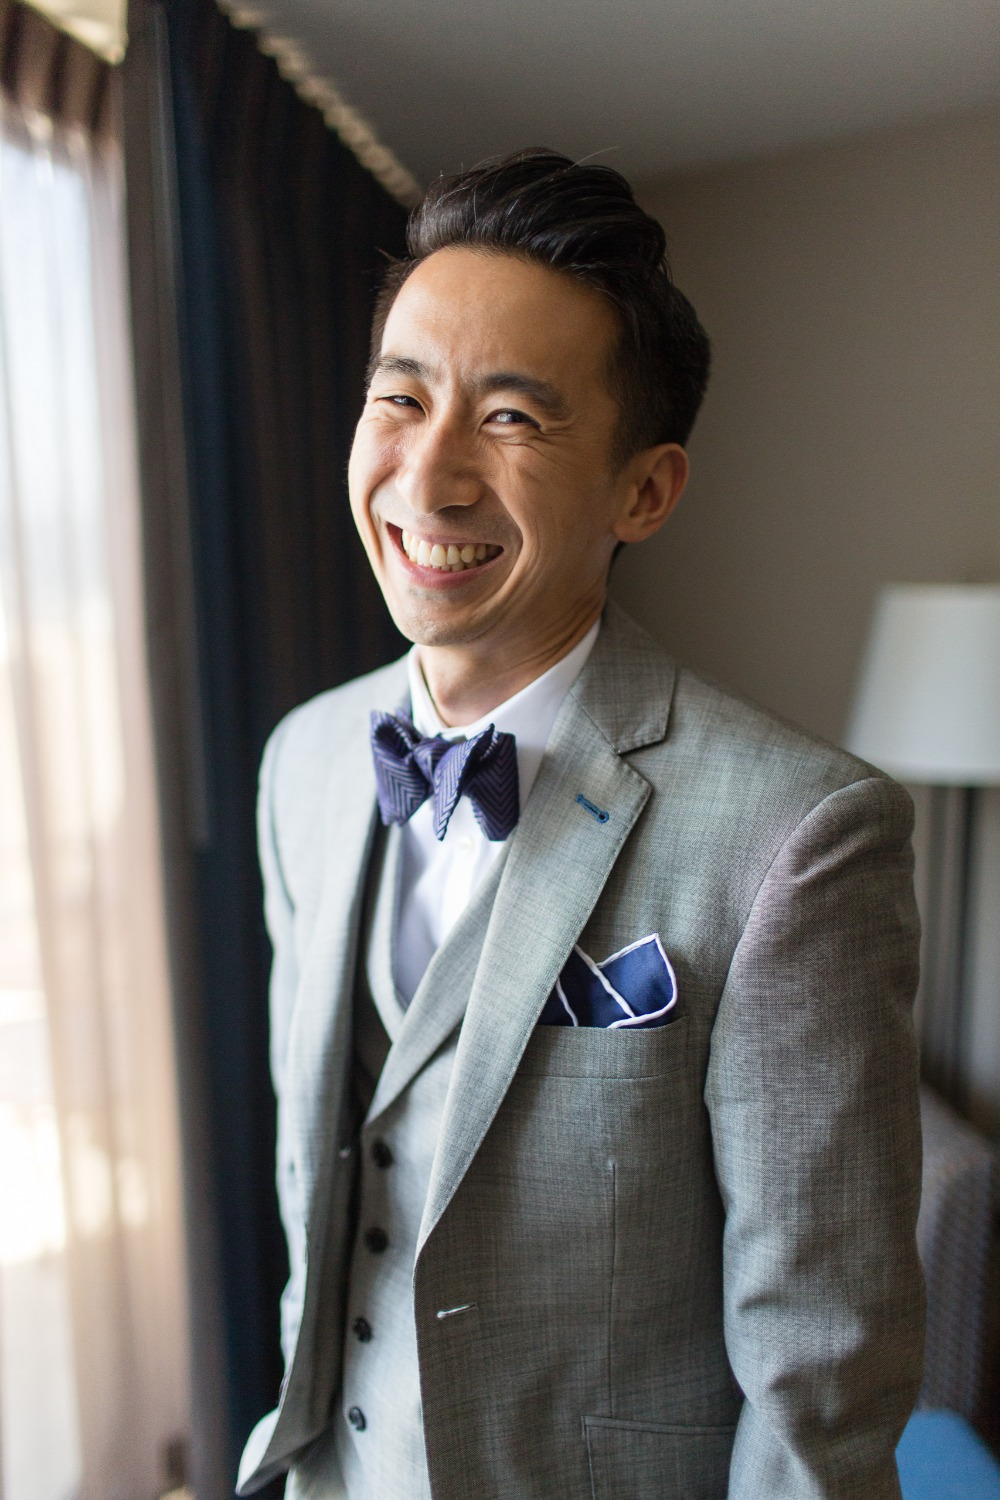 Groom in gray suit with bowtie